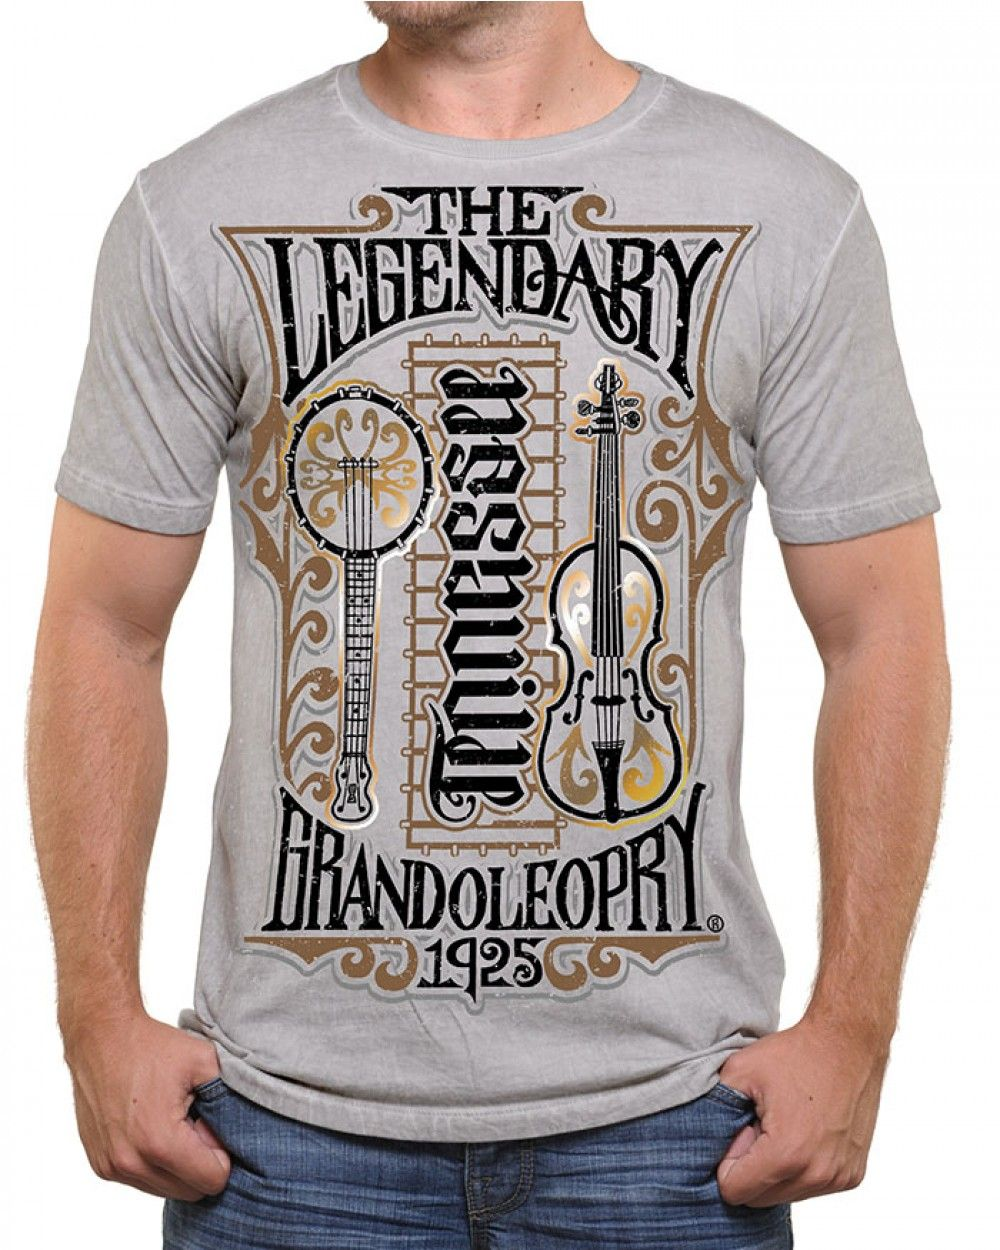 THE LEGENDARY GRAND OLE OPRY AMBIGRAM TEE - Country roots - Get The Look